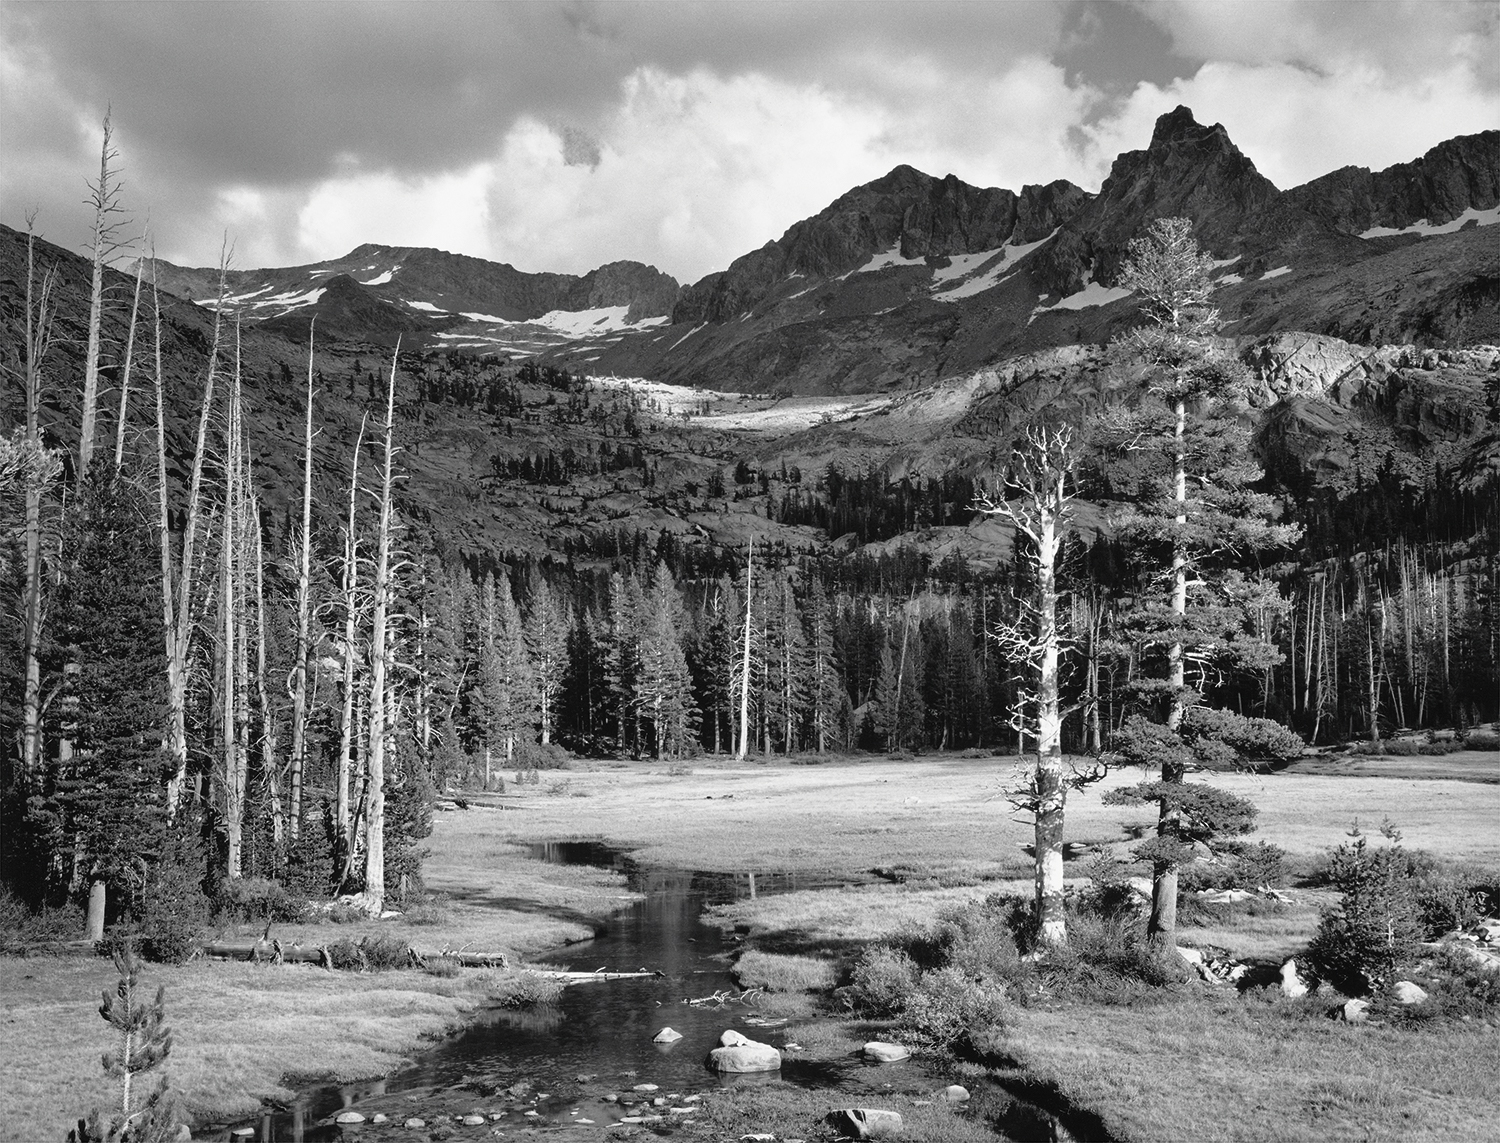 Mount Ansel Adams, Lyell Fork of the Merced River, c. 1935 Photograph by Ansel Adams